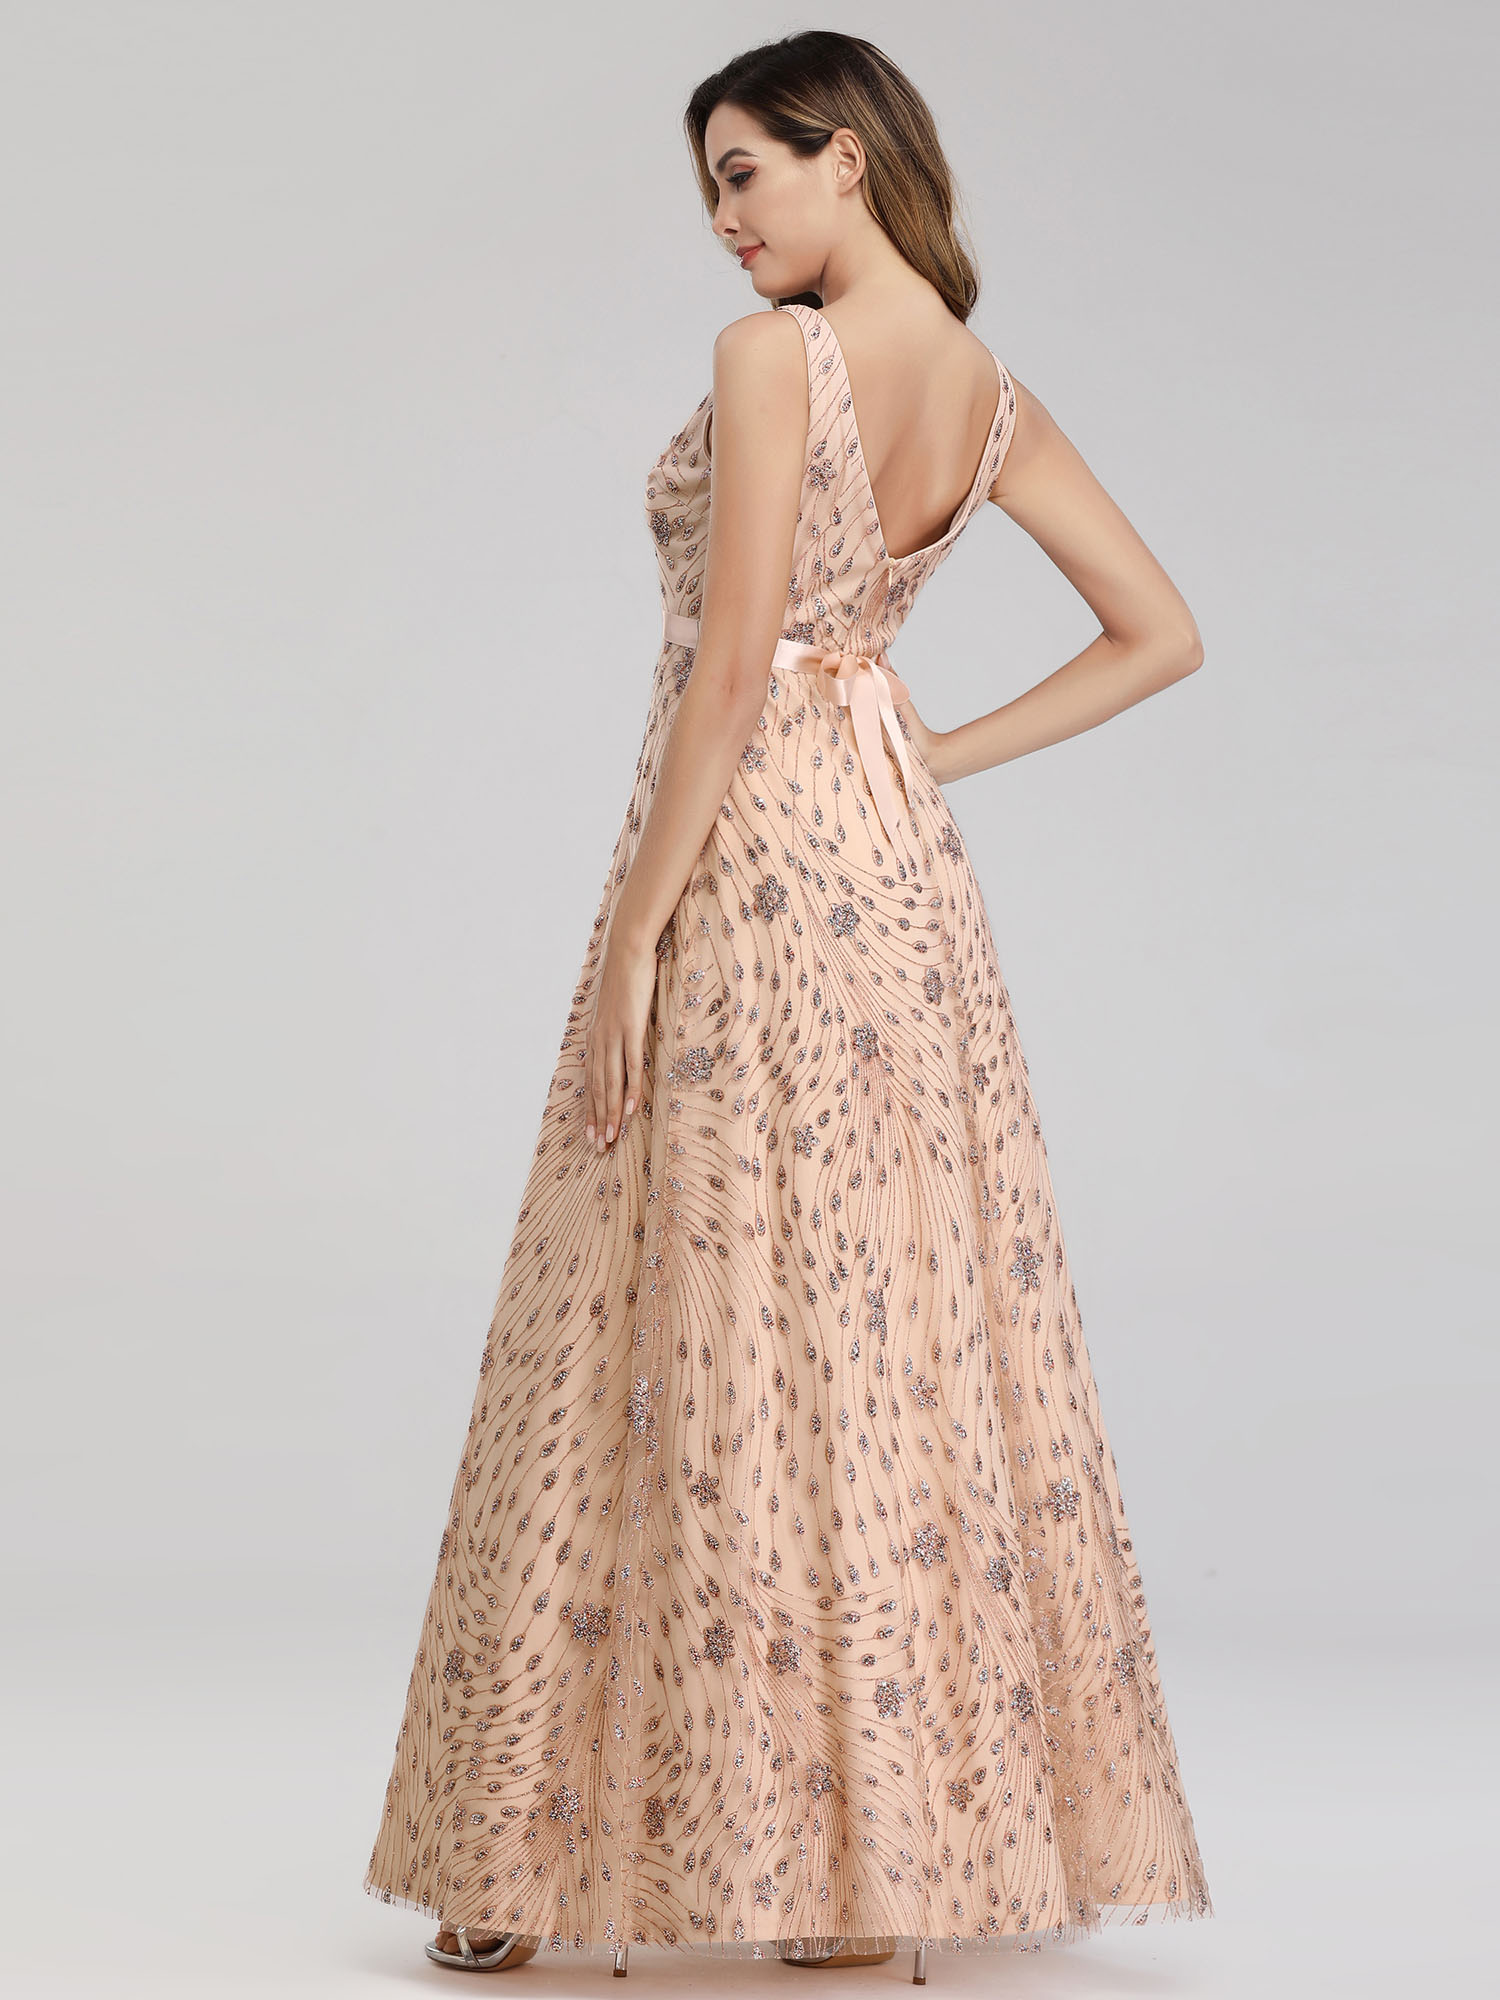 Ever-Pretty-US-Glitter-Evening-Dresses-A-Line-Floral-V-Neck-Party-Cocktail-Gowns thumbnail 9